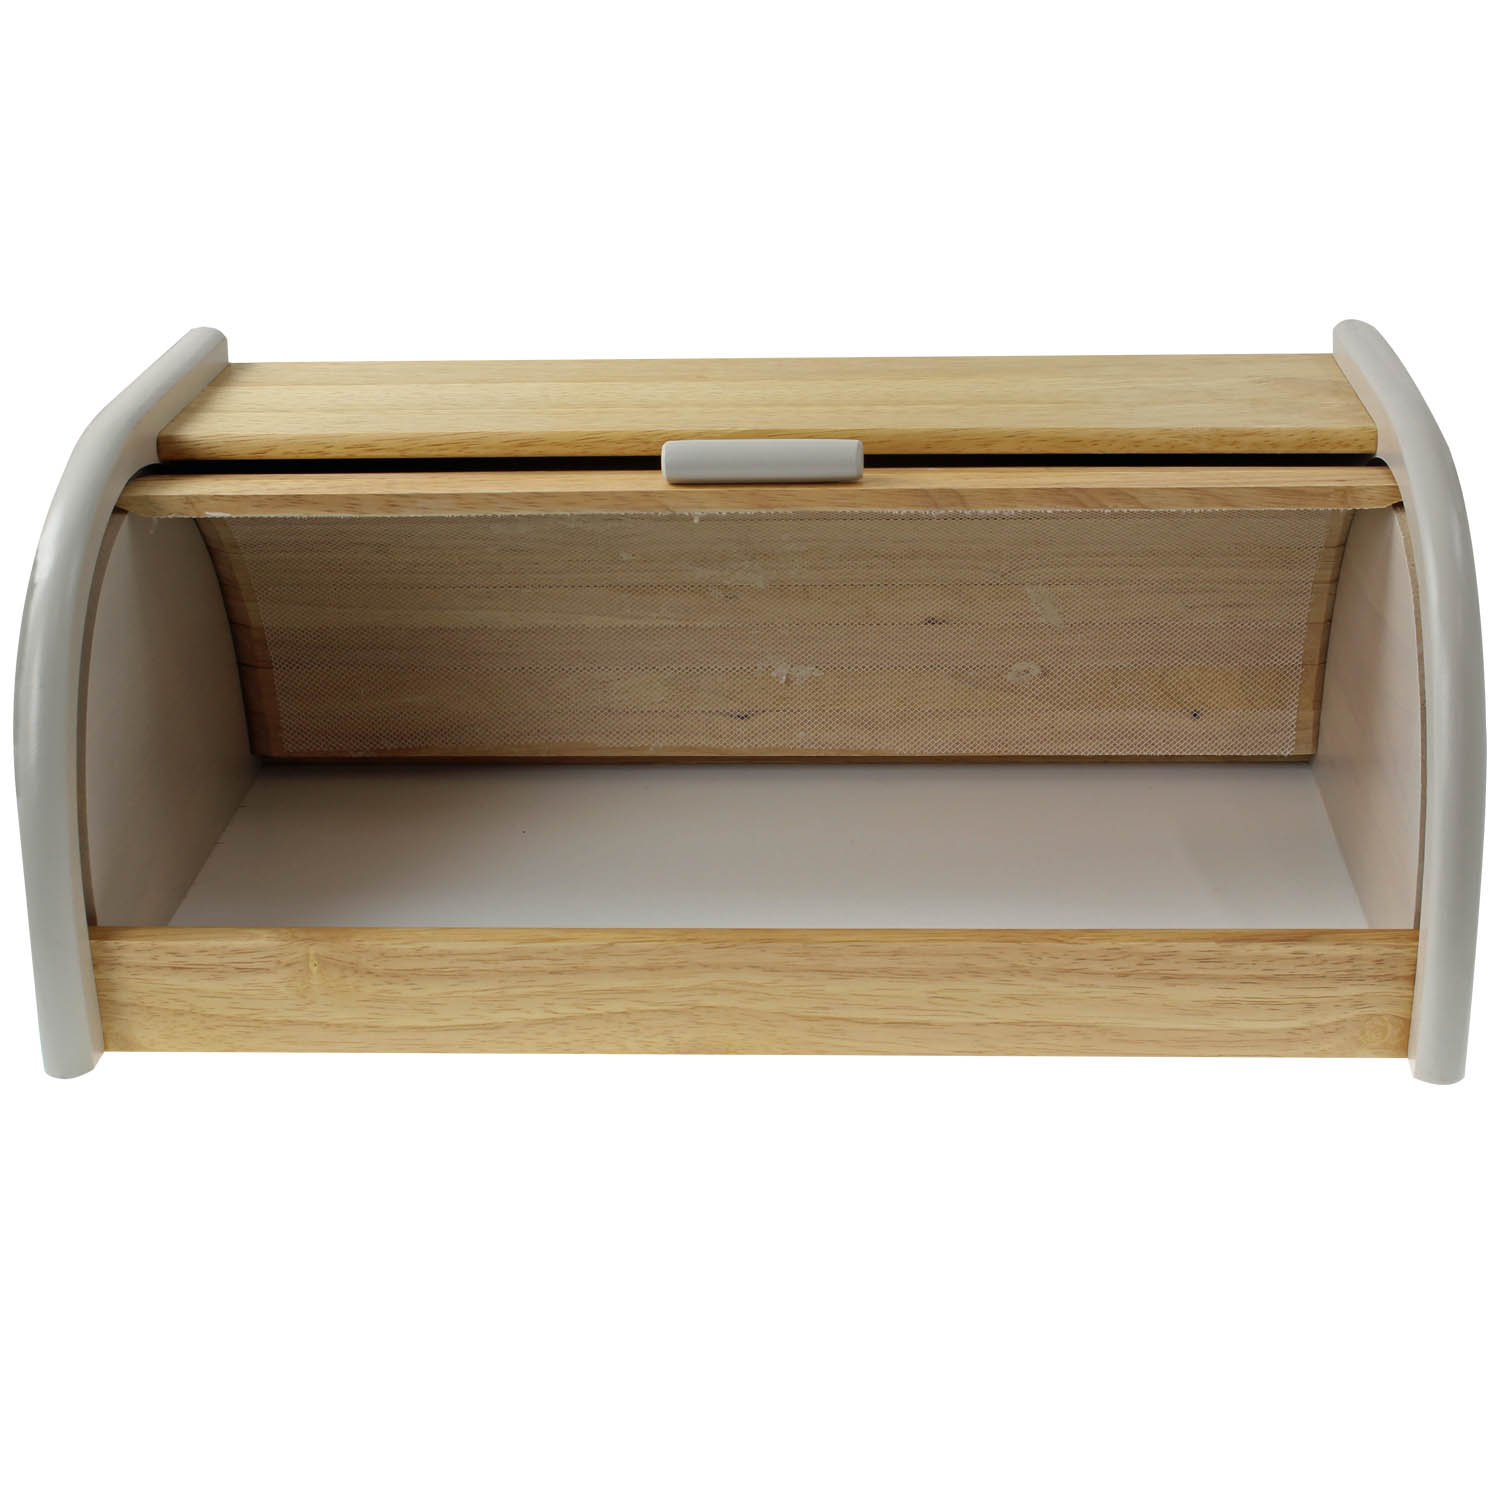 Details About Wooden Loaf Bread Bin Kitchen Drop Down Front Lid Food Storage Container Grey